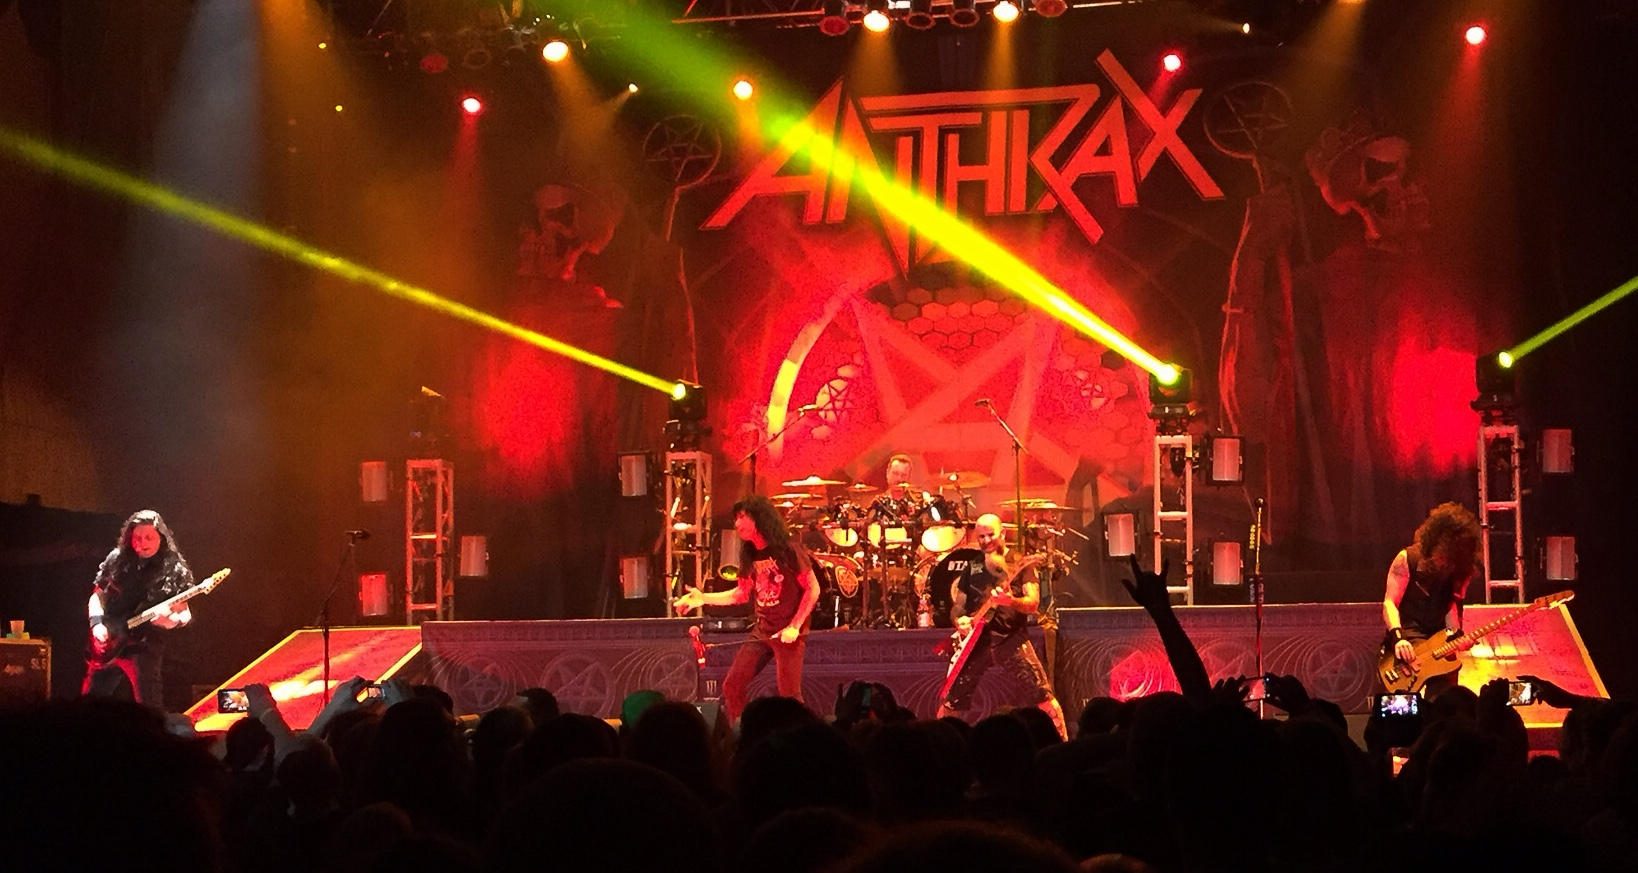 Anthrax @ House Of Blues, Dallas. Photo By J. Kevin Lynch.